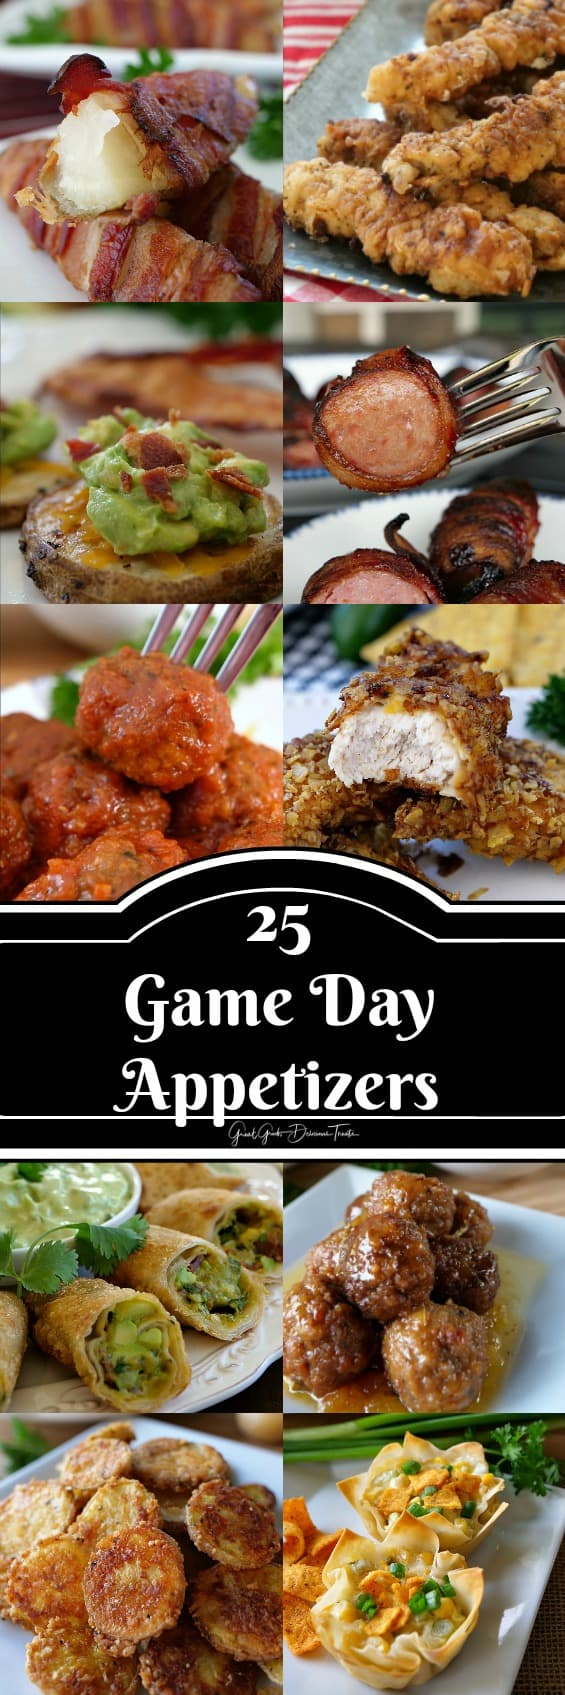 25 Appetizer Recipes for the Big Game